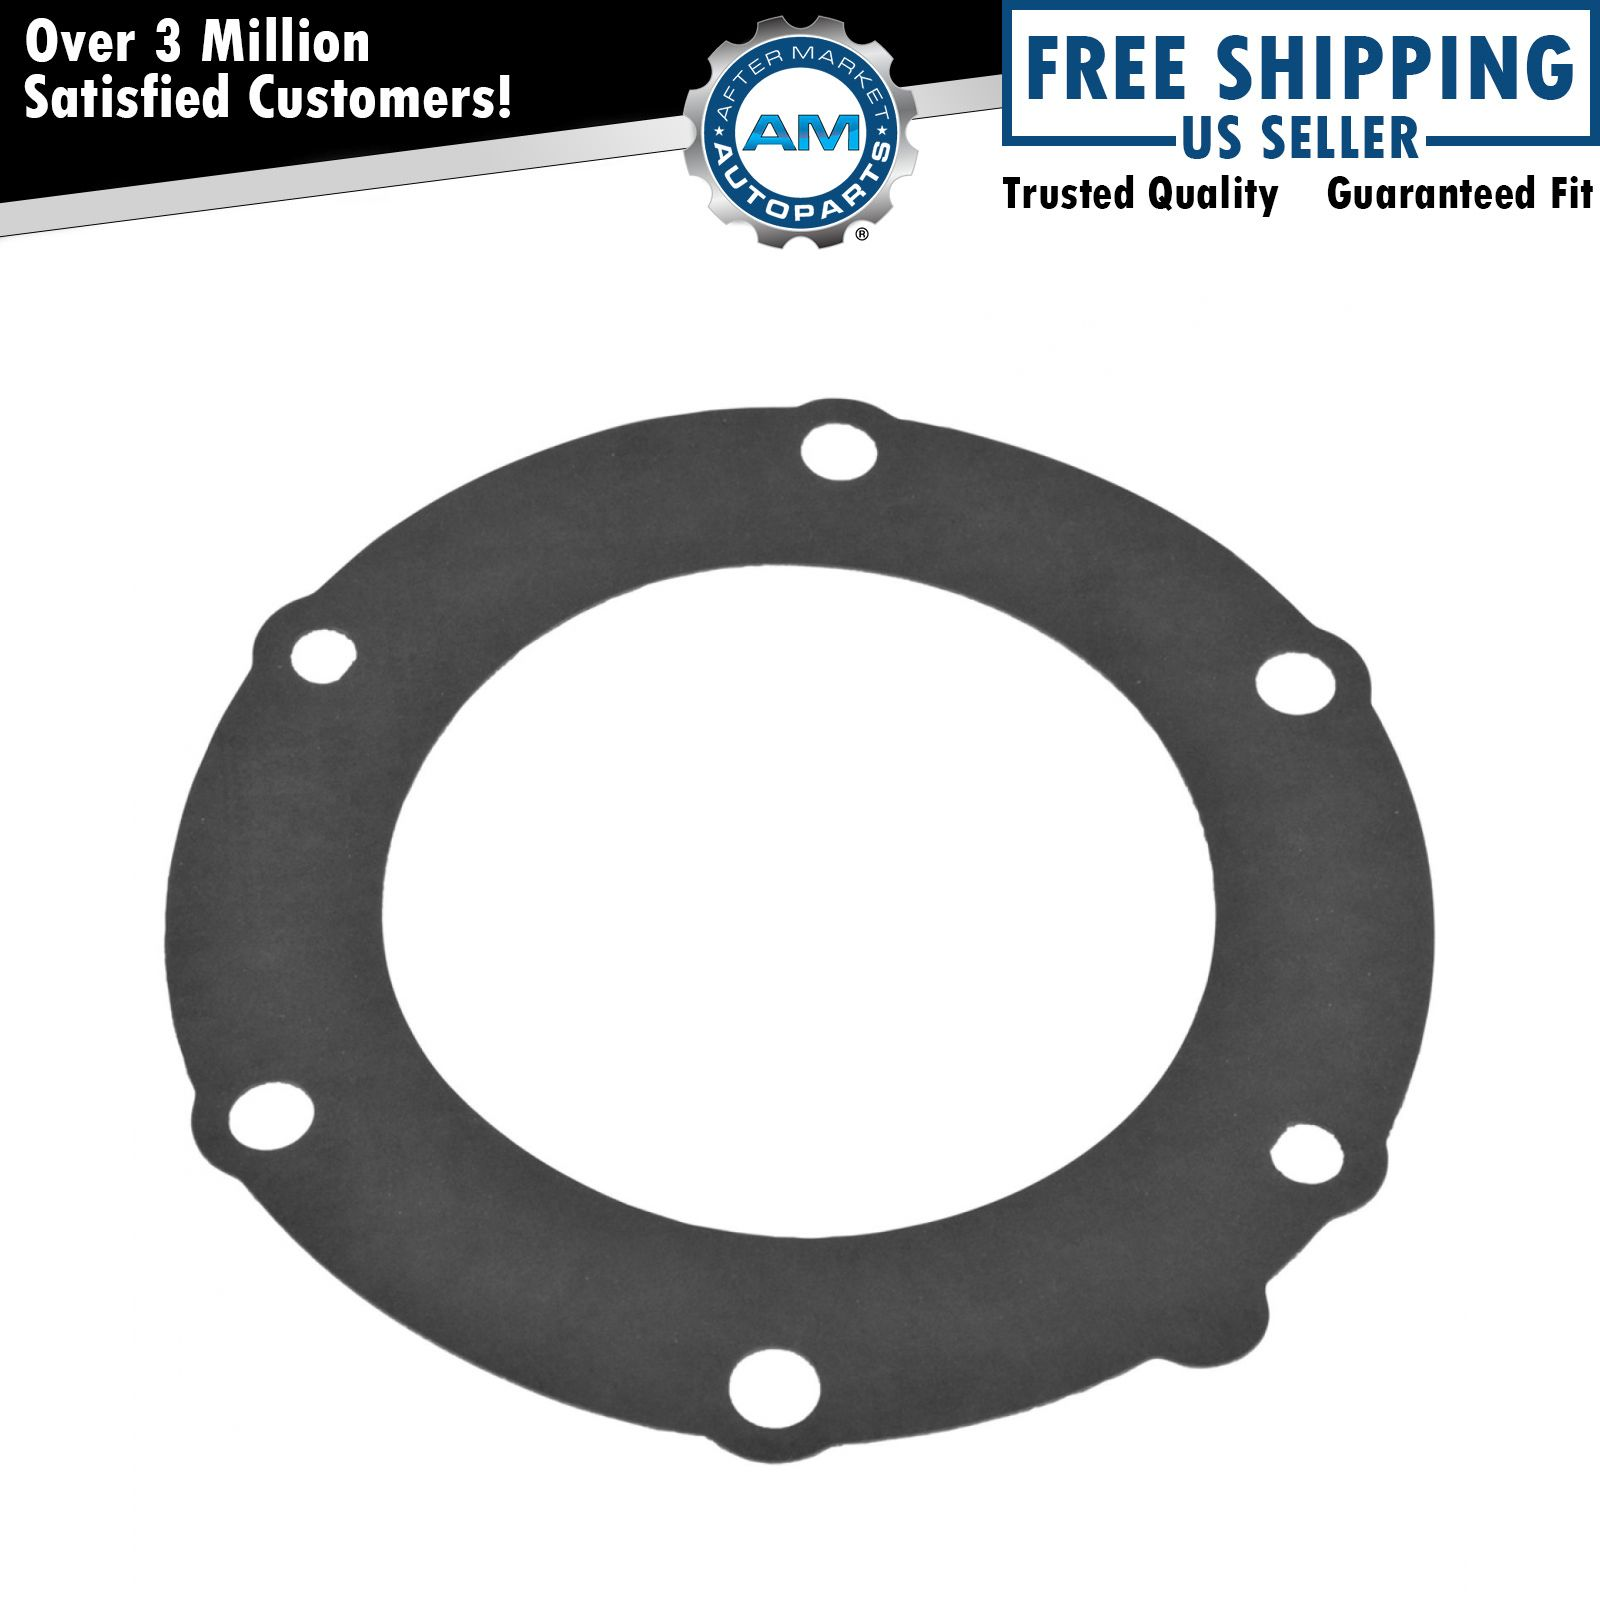 OEM 24245110 Transfer Case Adapter Gasket for Cadillac Chevy GMC ...